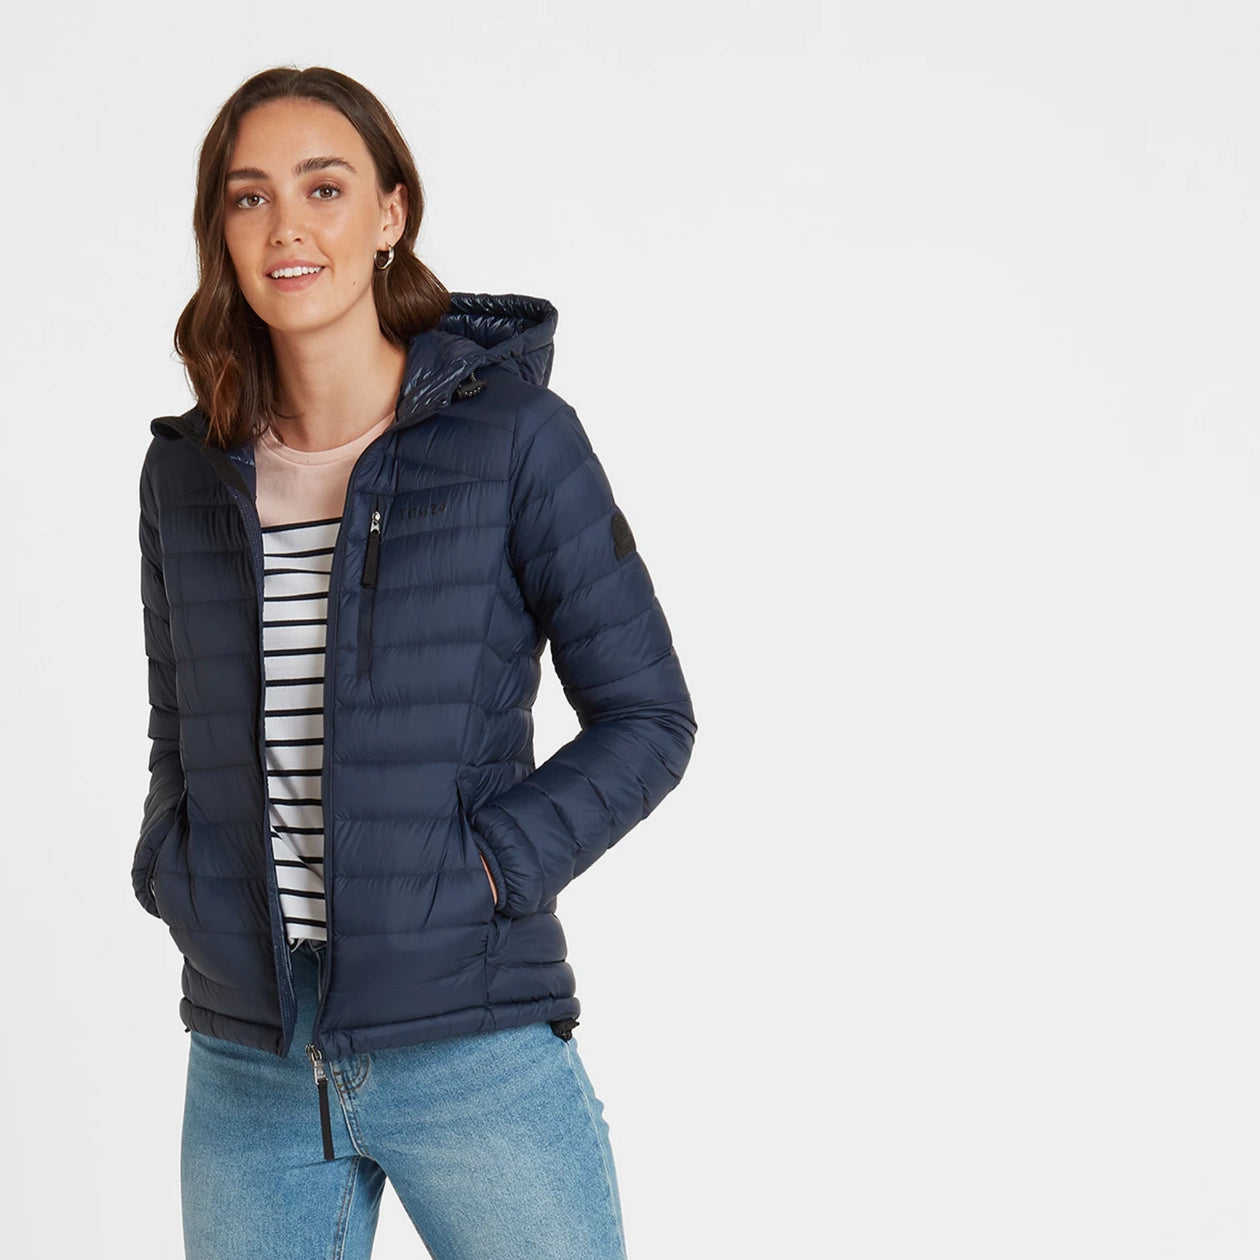 Base Womens Hooded Down Jacket - Dark Indigo image 4